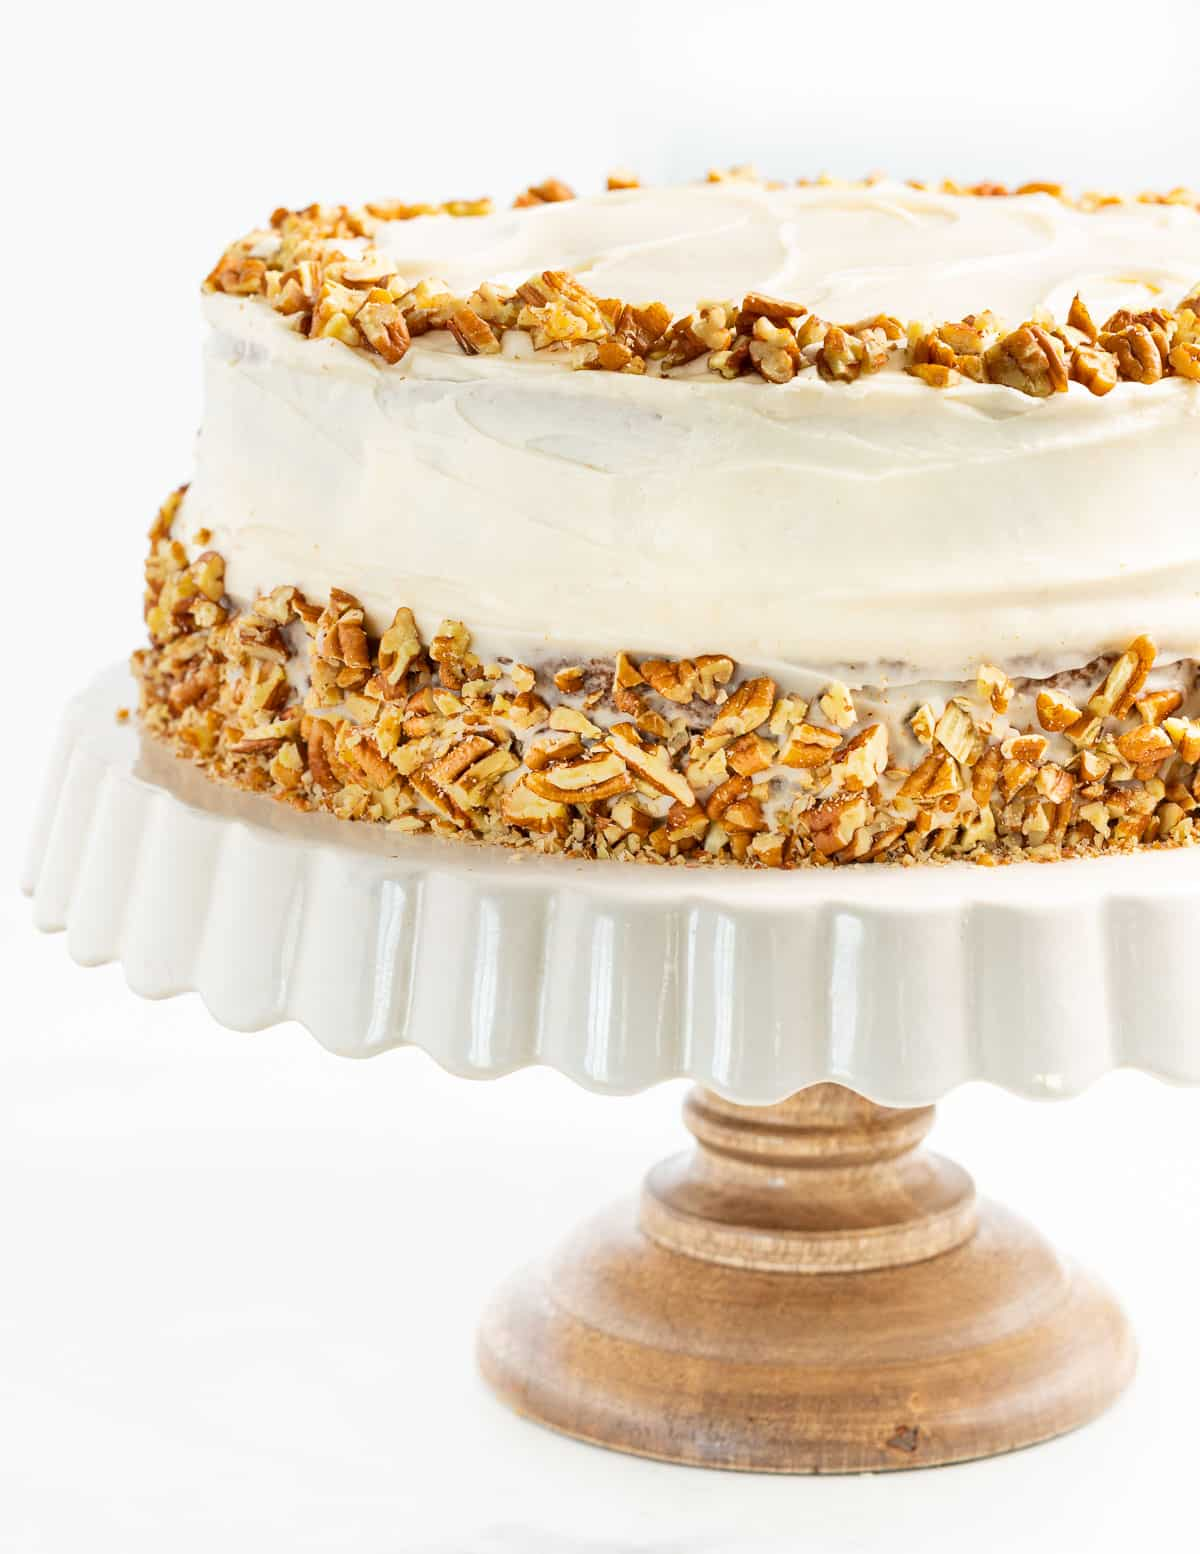 a vegan hummingbird cake decorated with cream cheese frosting and chopped pecans